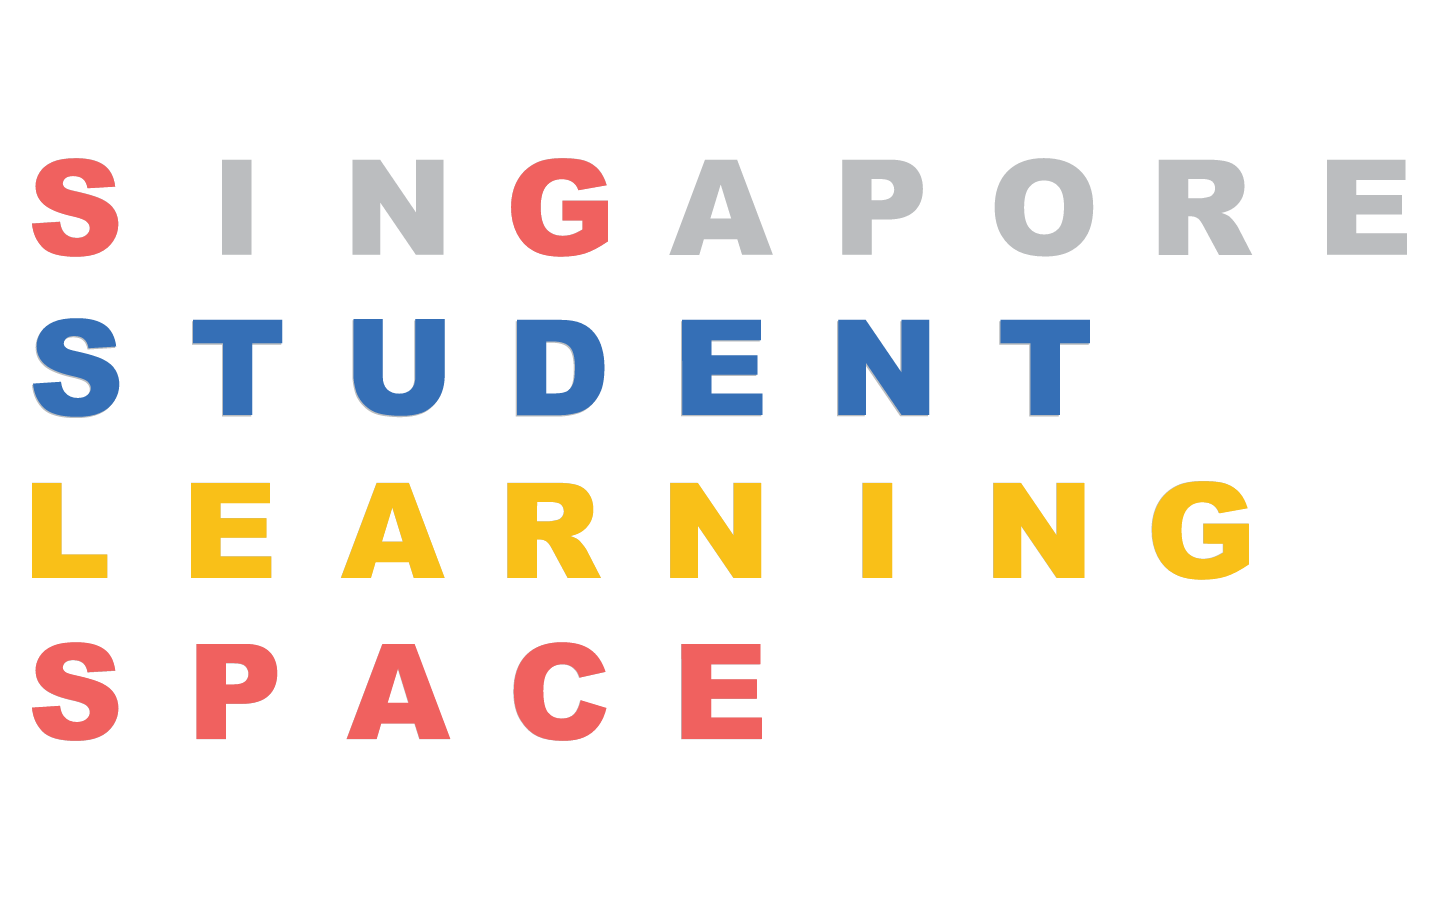 Singapore Student Learning Space